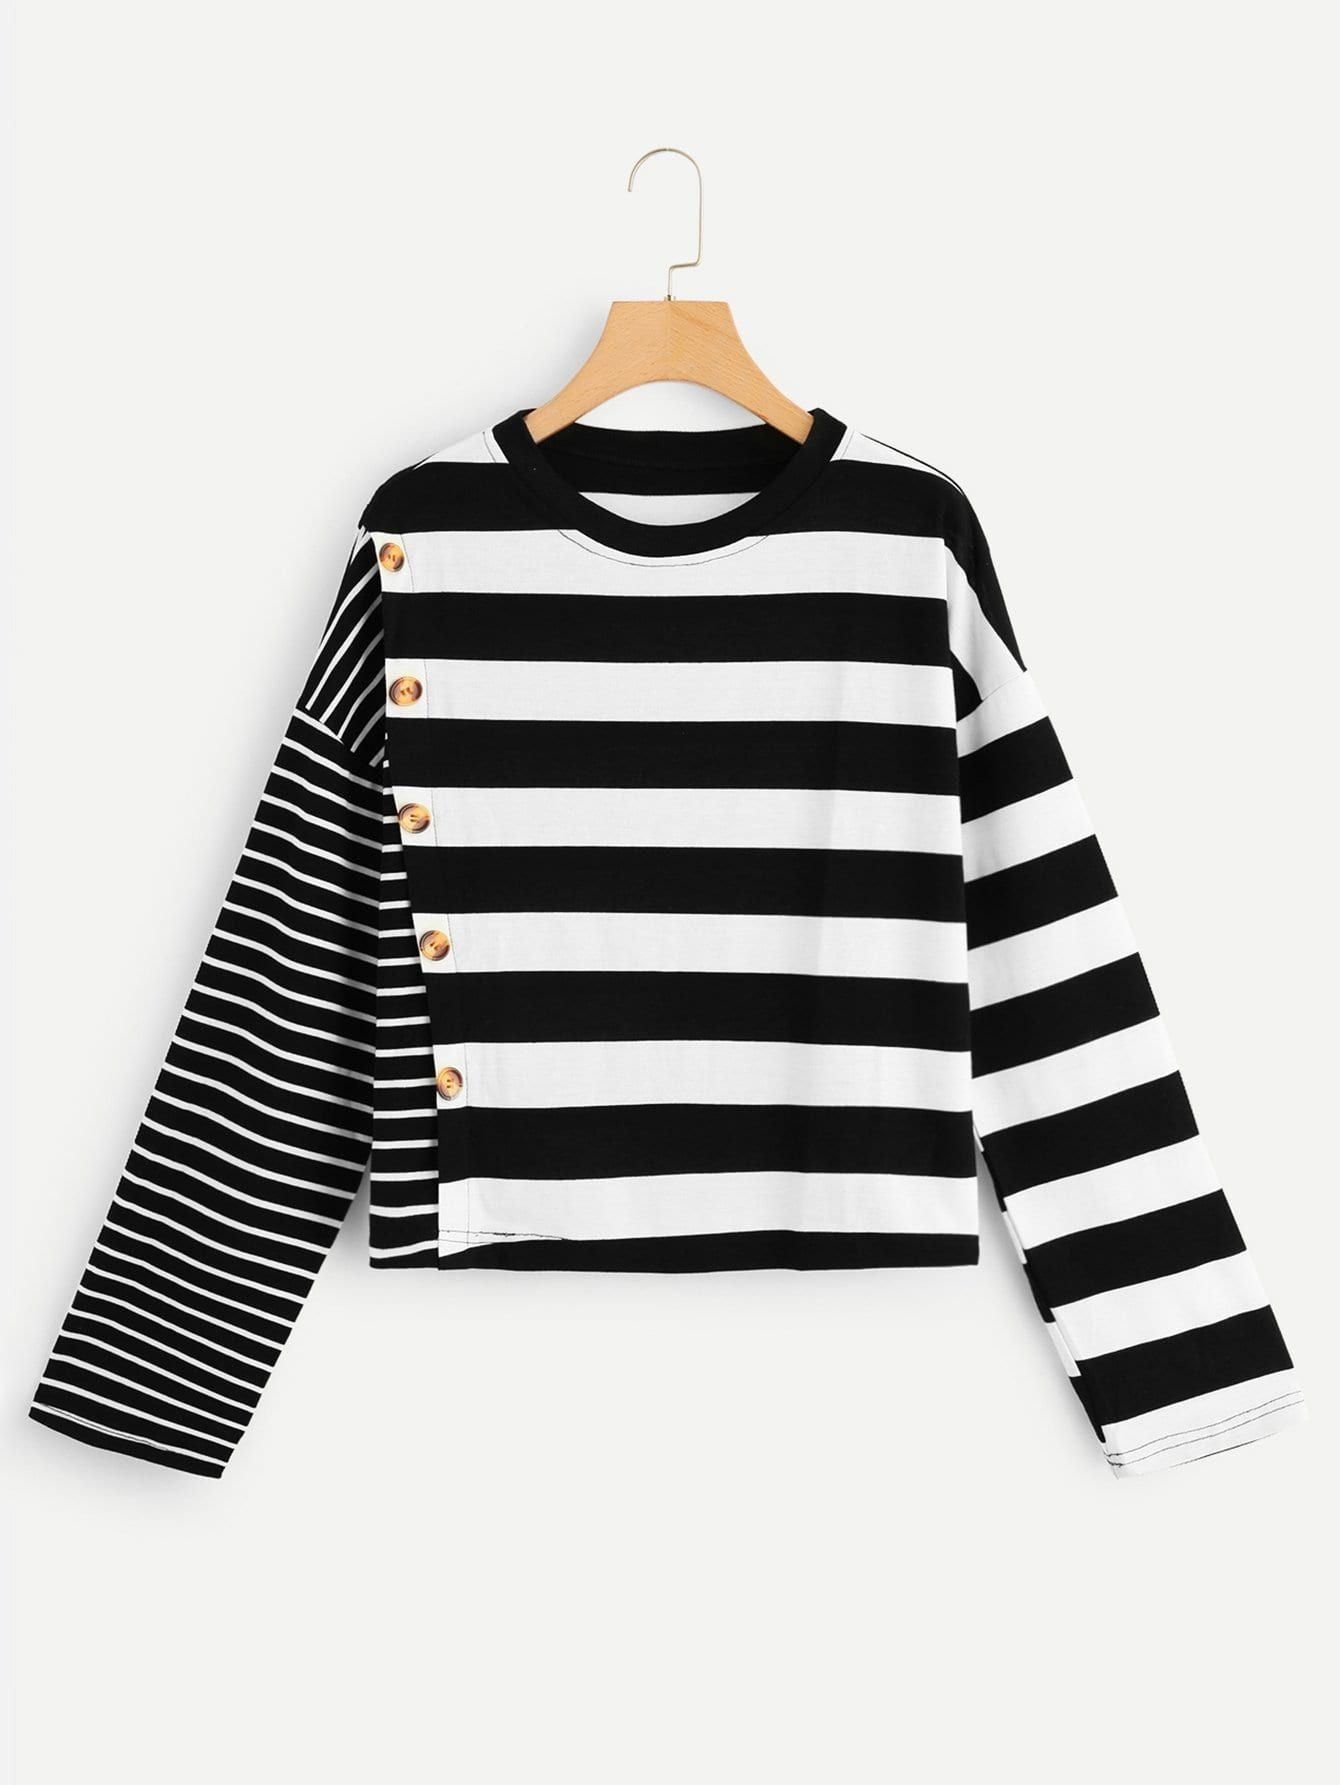 50b1f49134 Women Casual Striped Regular Fit Round Neck Long Sleeve Pullovers Black and White  Regular Length Button Decoration Striped Tee